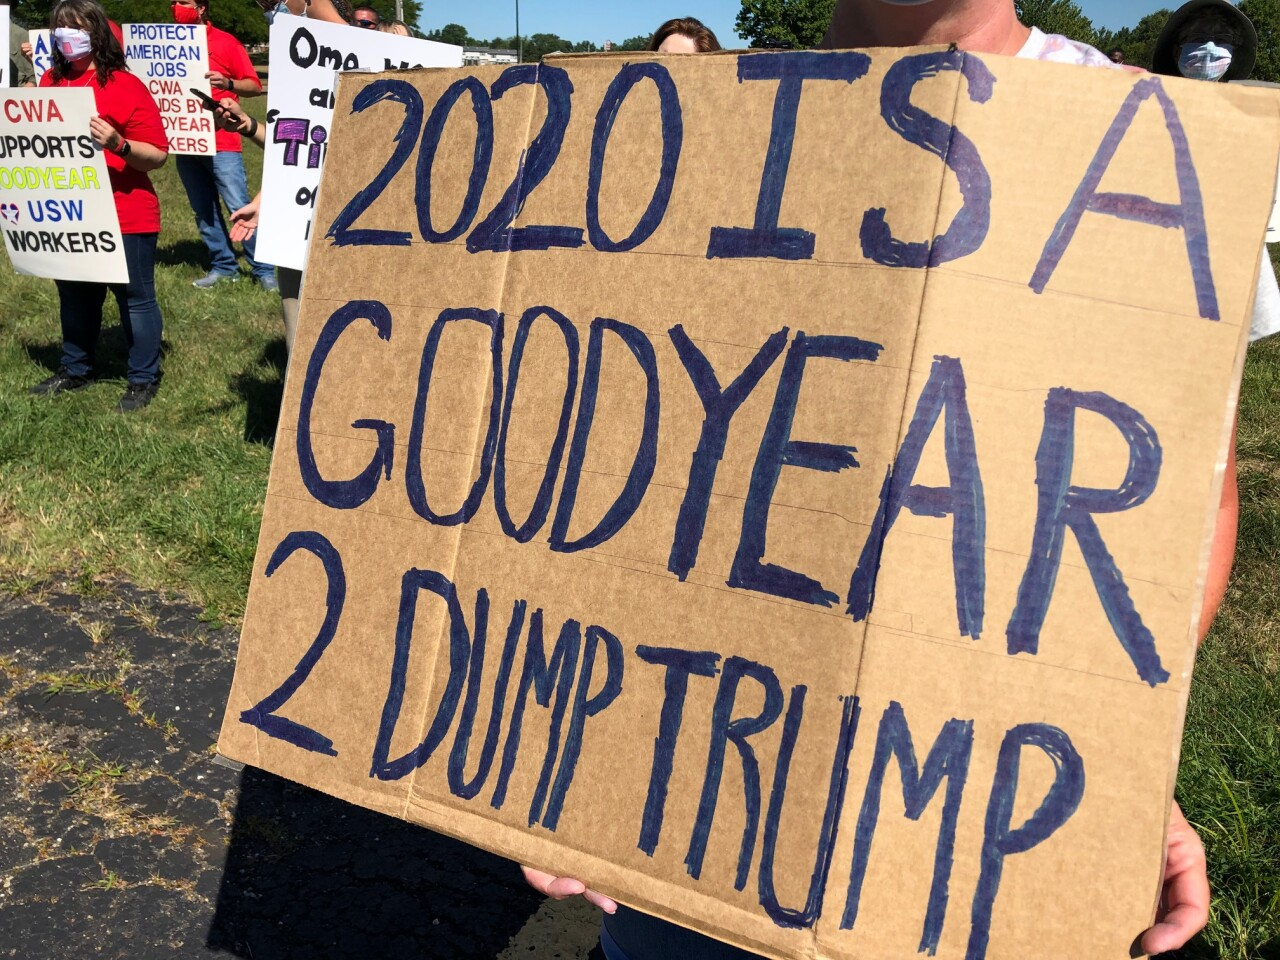 Workers come out to rally against President Trump's call to boycott Goodyear Tire and Rubber Company.